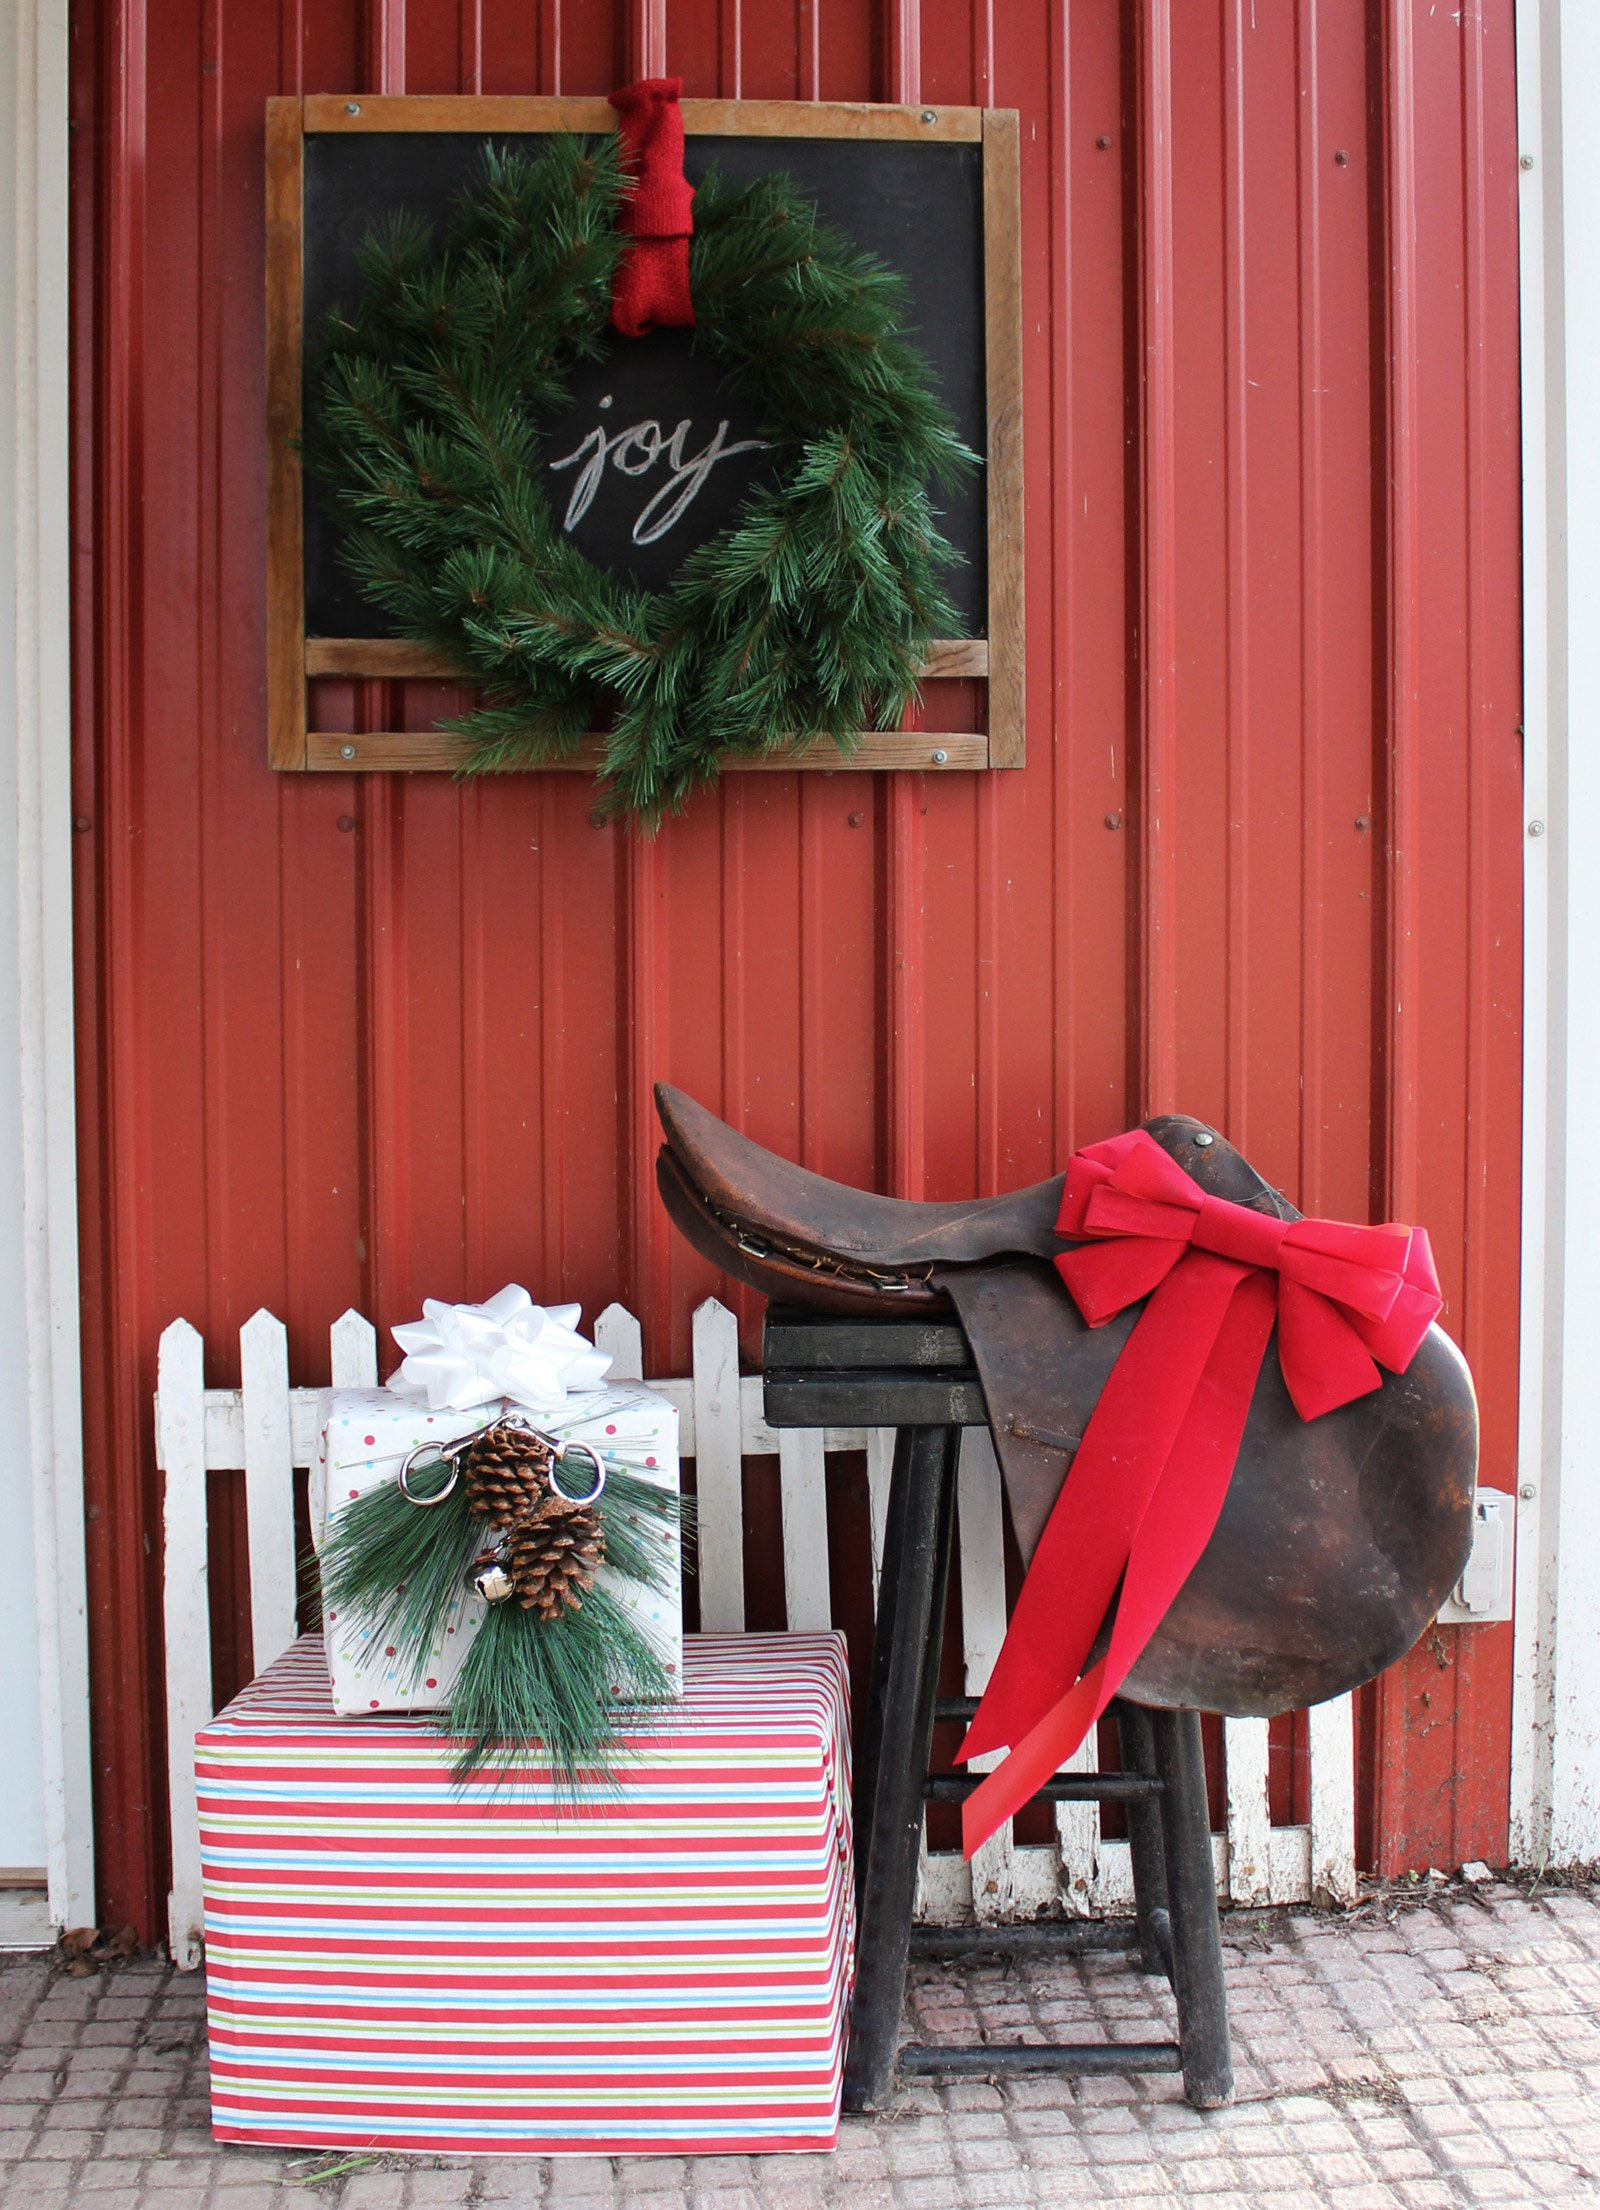 outdoor christmas decorations featuring equestrian english saddle, wrapped gifts, chalkboard, wreaths, silver bells, and snaffle bit